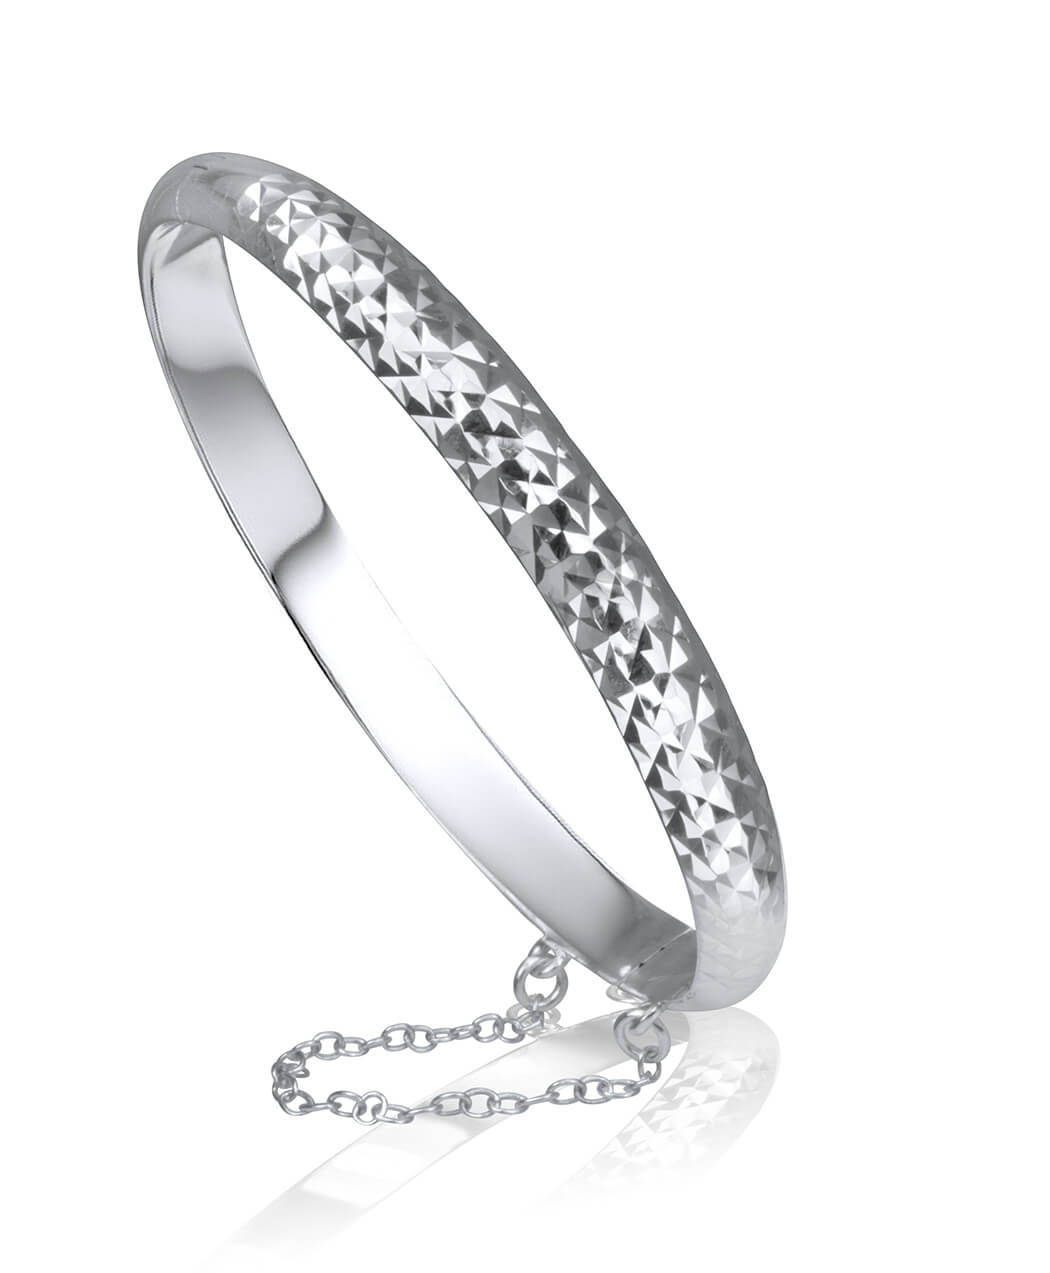 Diamond Cut Sterling Silver Bangle